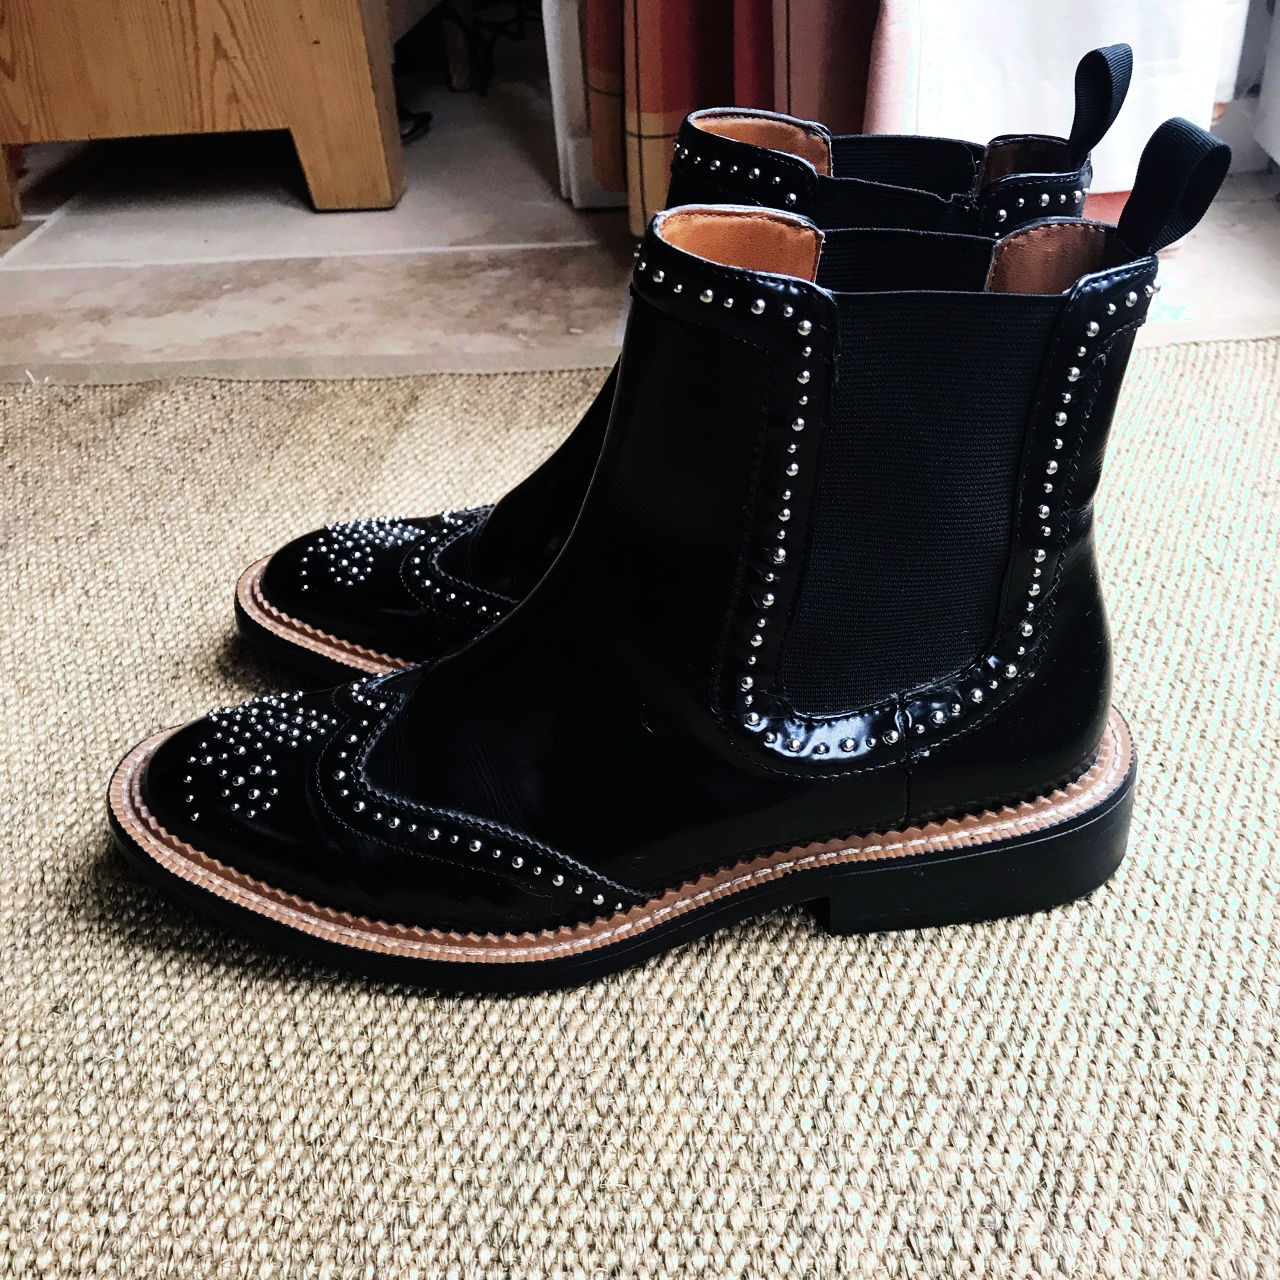 ZARA studded black ankle boots. Only